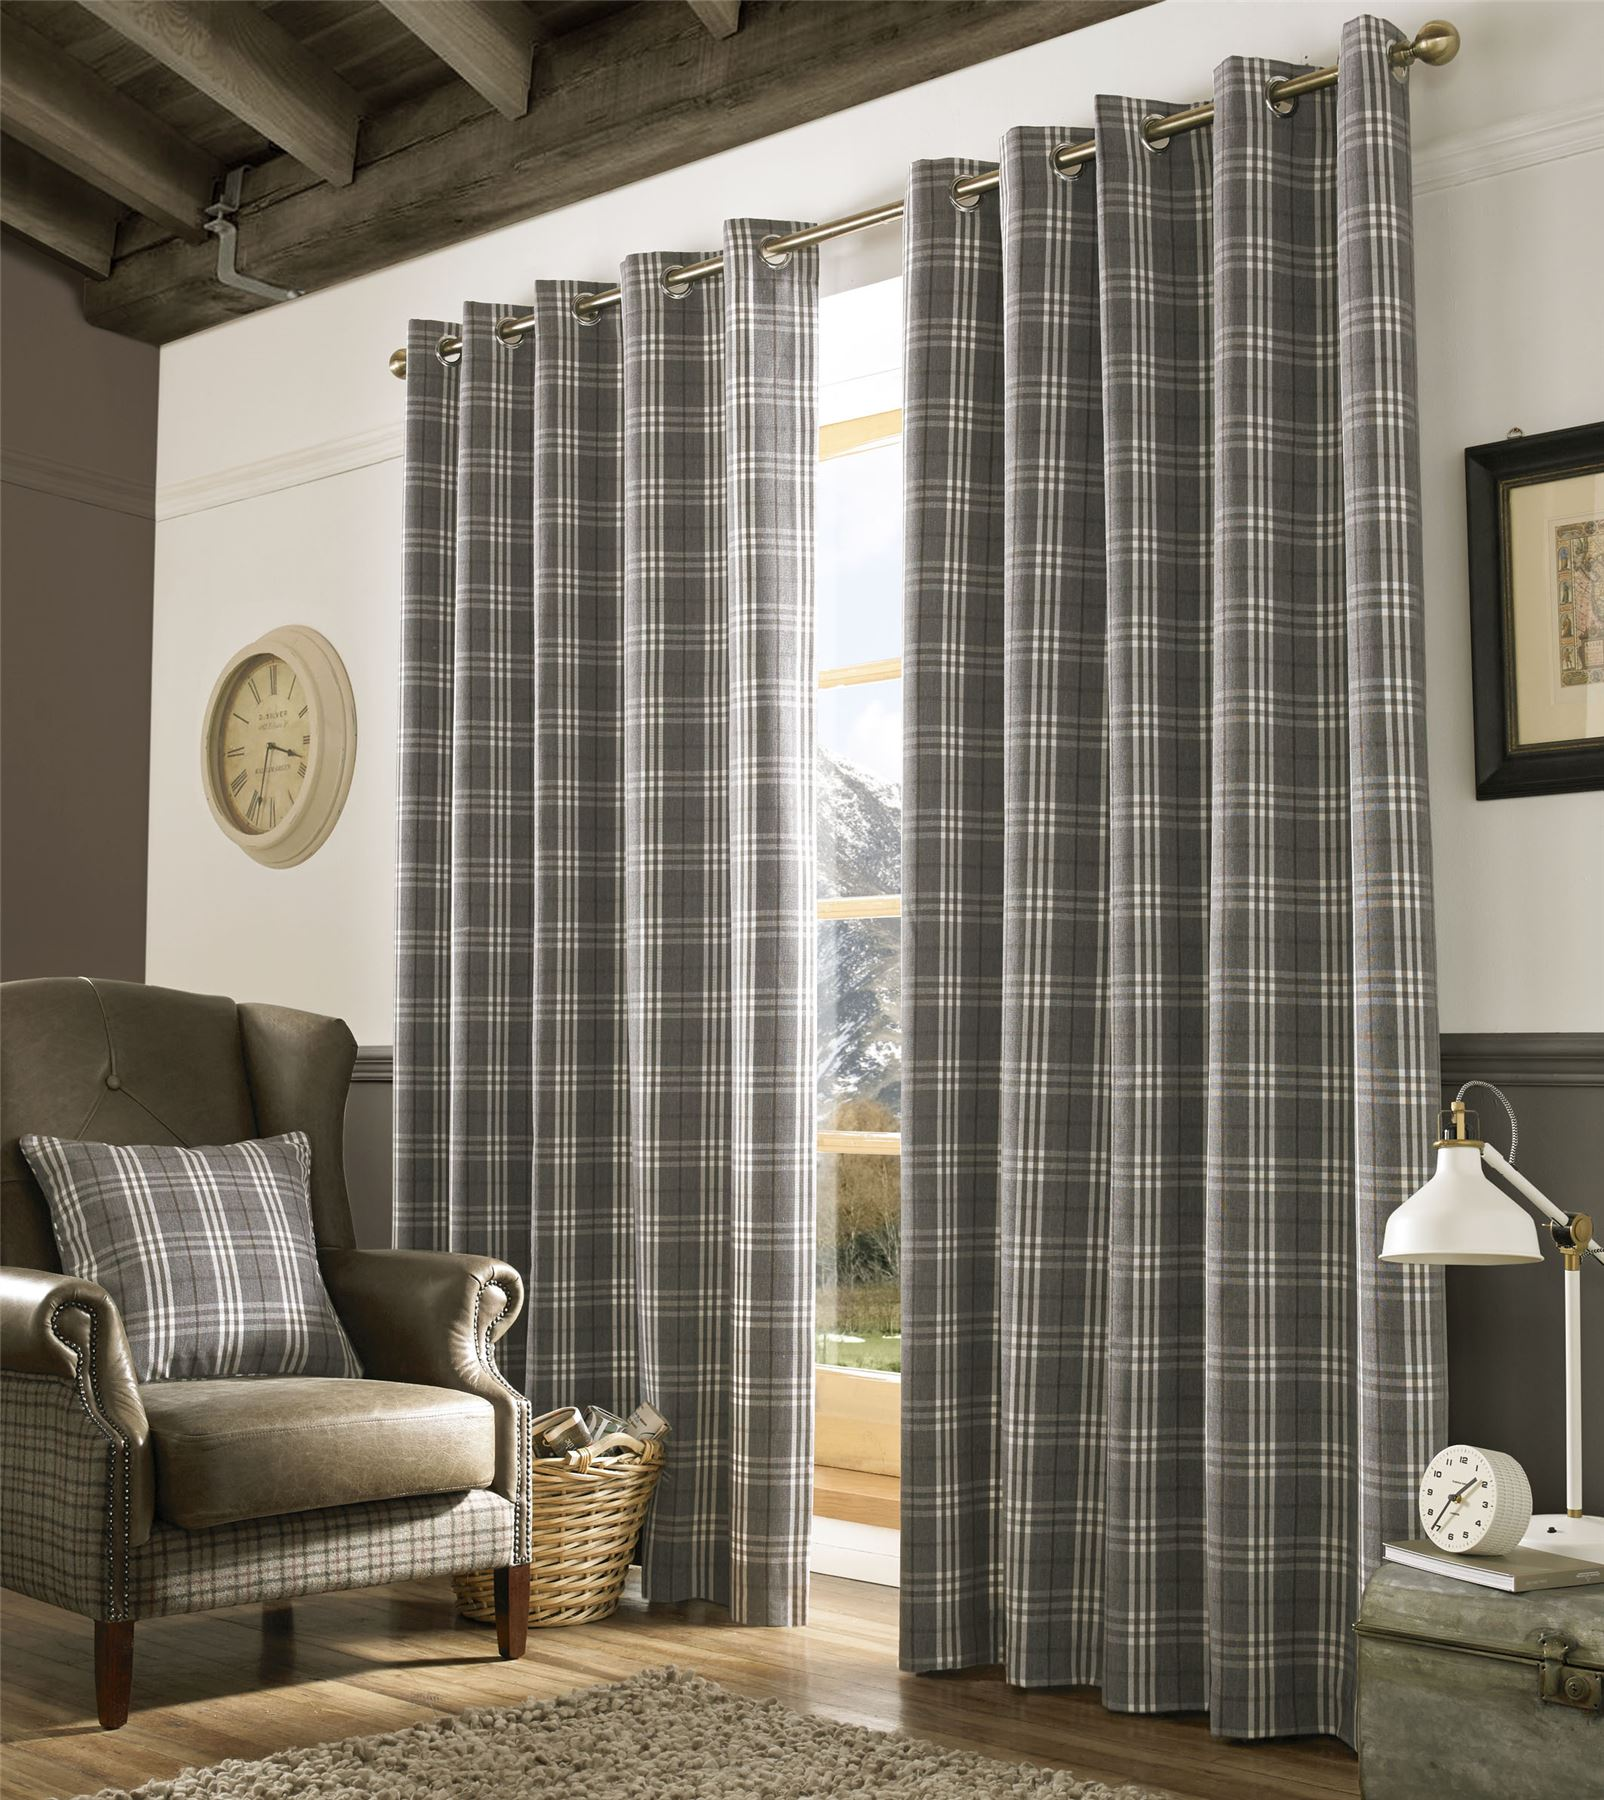 TARTAN CHECK GREY WHITE WOVEN LINED RING TOP CURTAINS *9